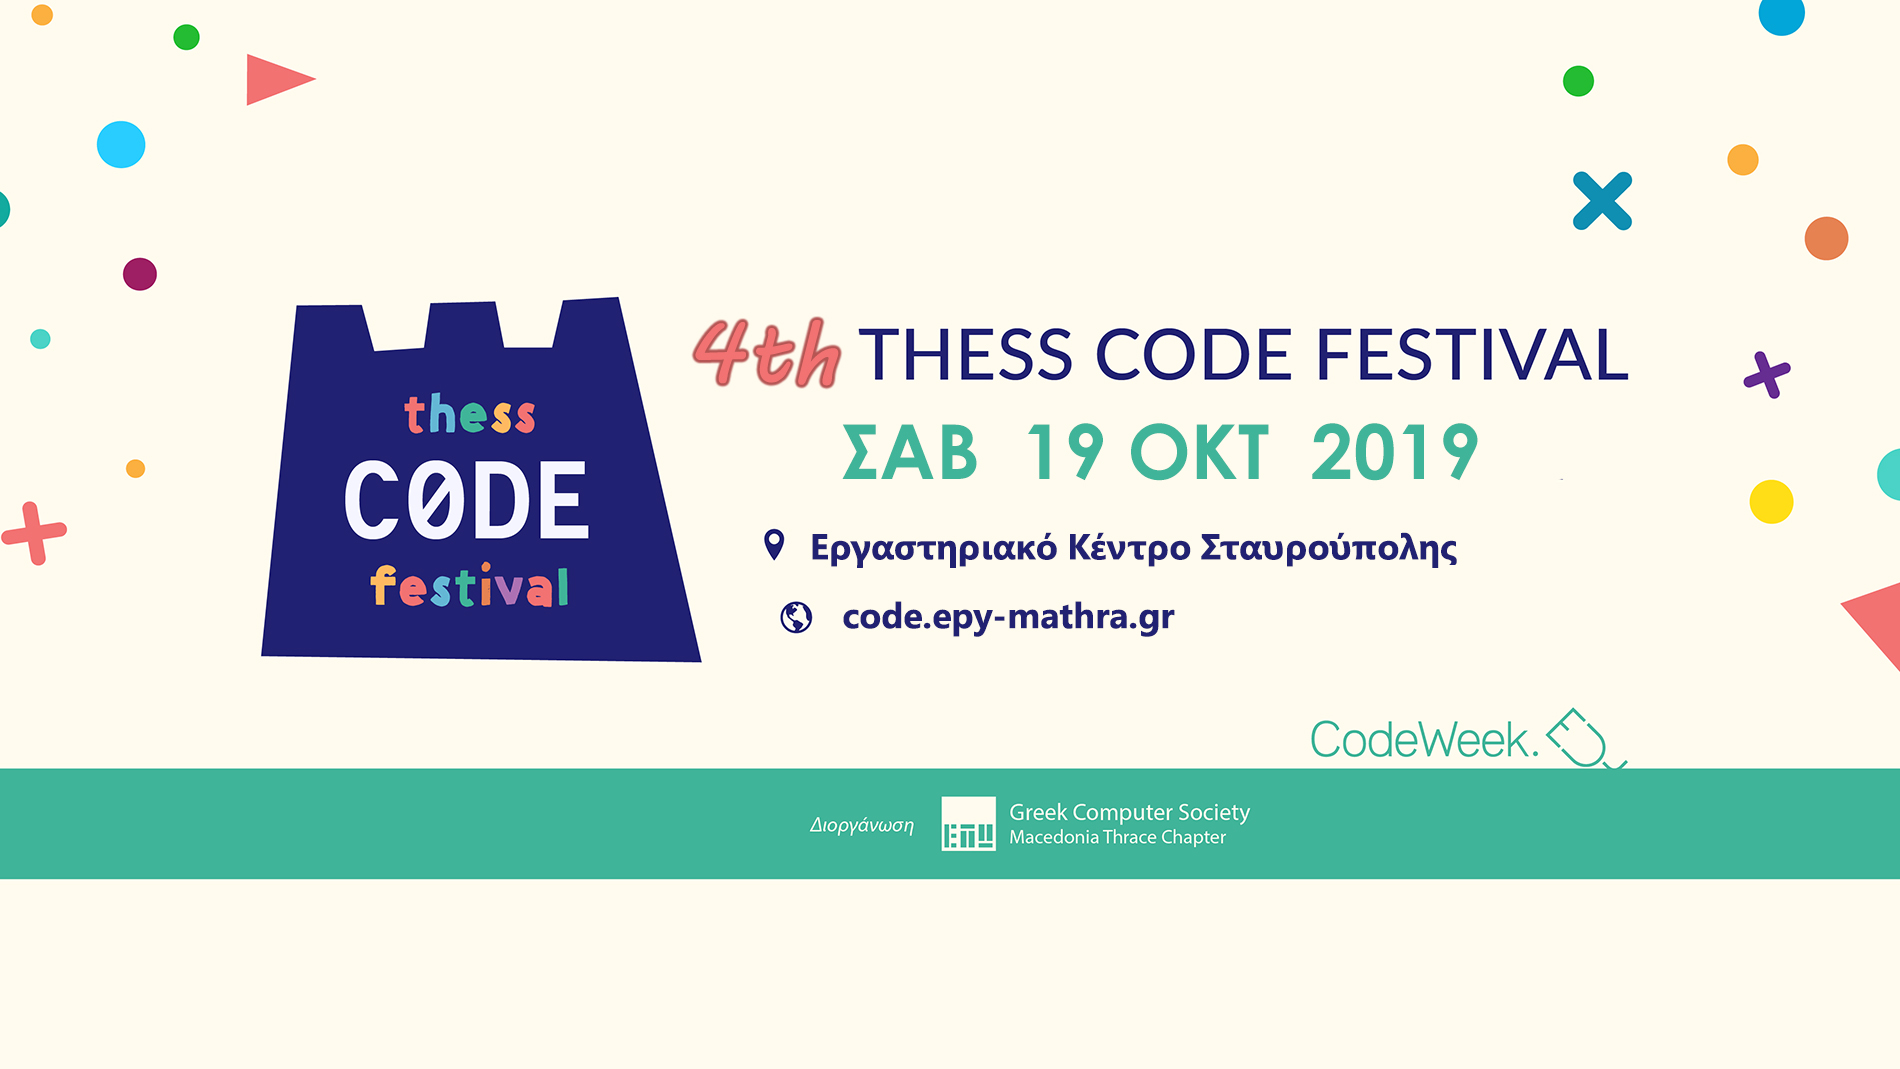 Fourth Thessaloniki Code Festival